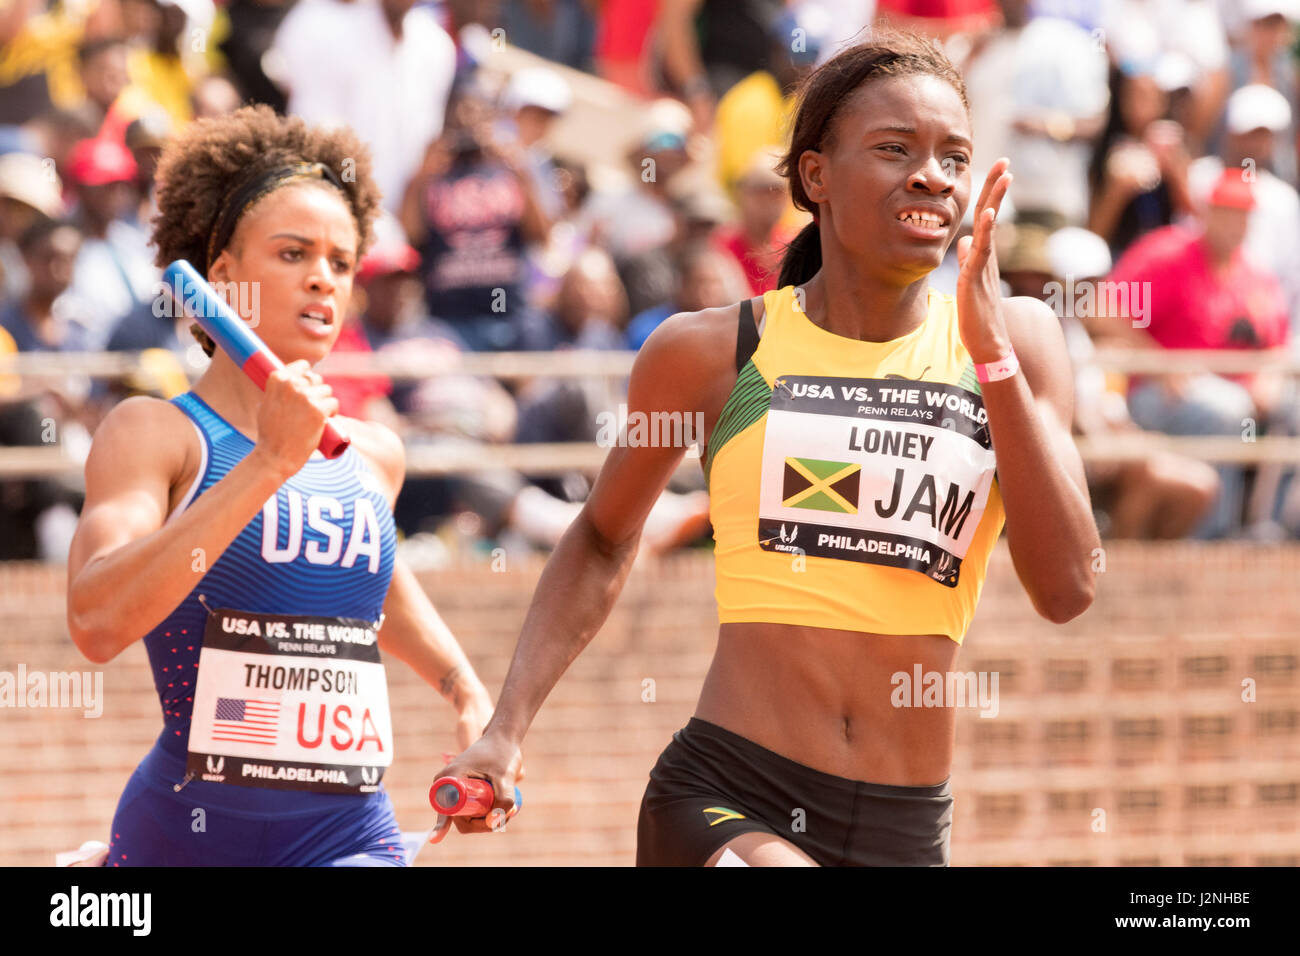 Philadelphia, Pennsylvania, USA. 29th Apr, 2017. TURQUOISE THOMPSON, of Team USA, and DAWALEE LONEY of Jamaica, - Stock Image